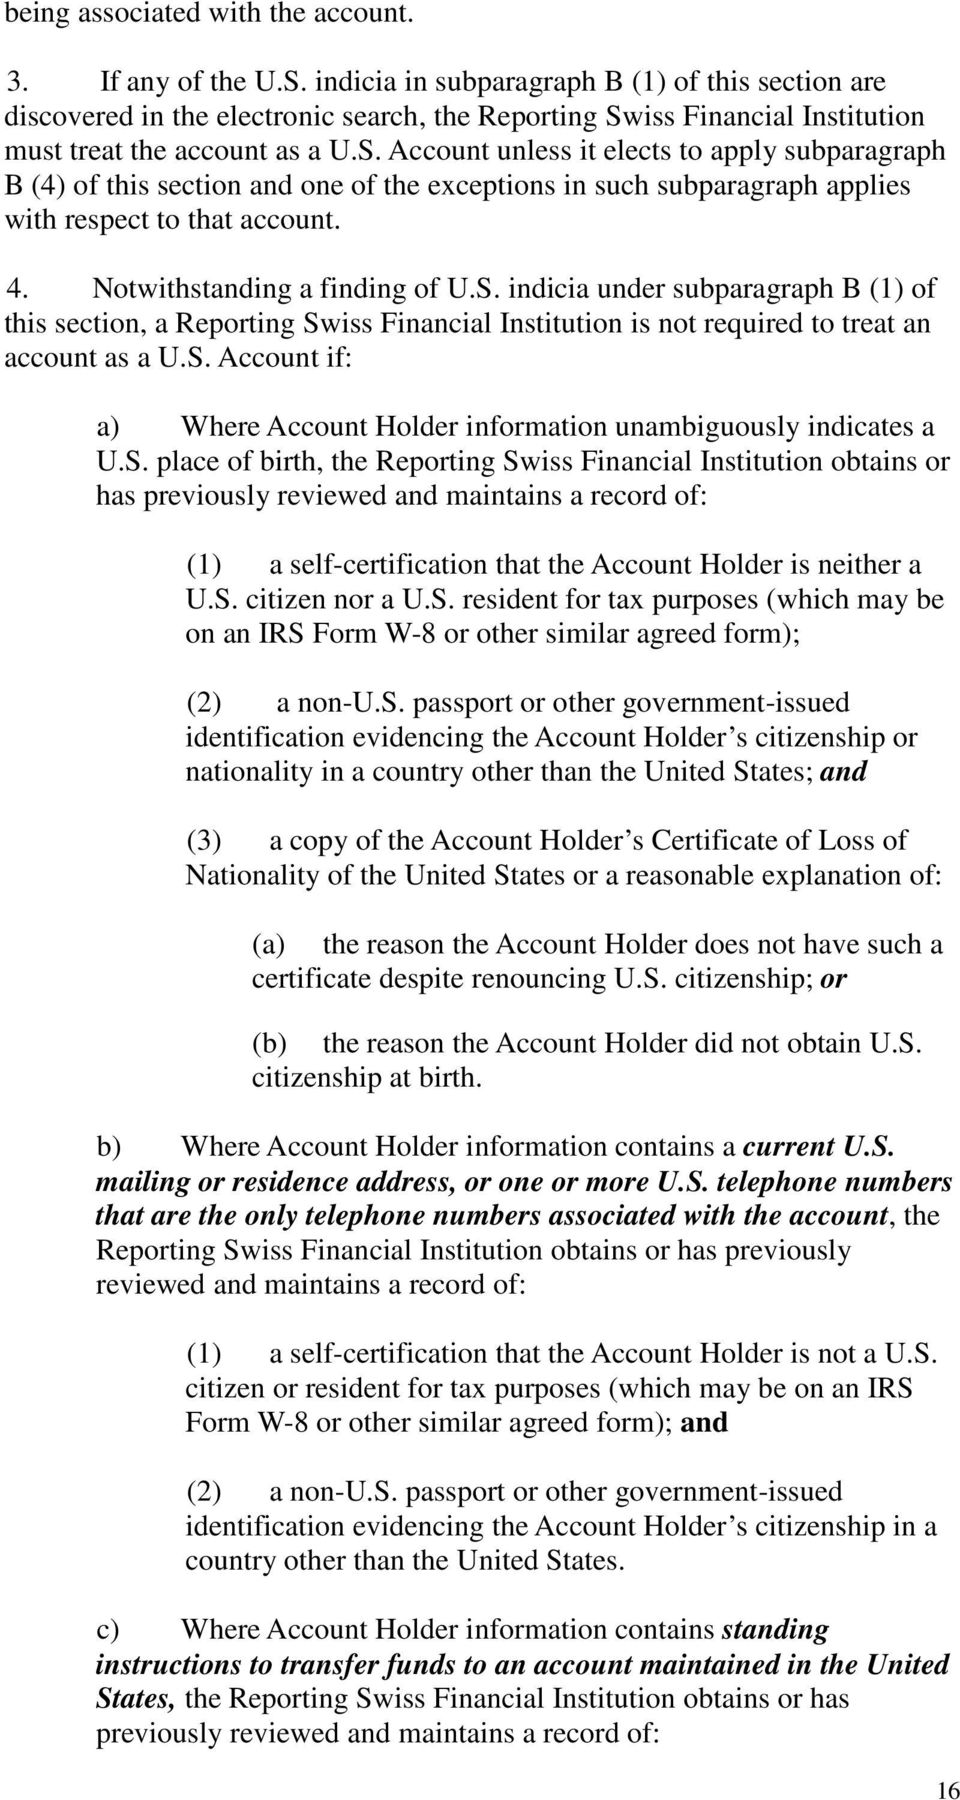 iss Financial Institution must treat the account as a U.S.